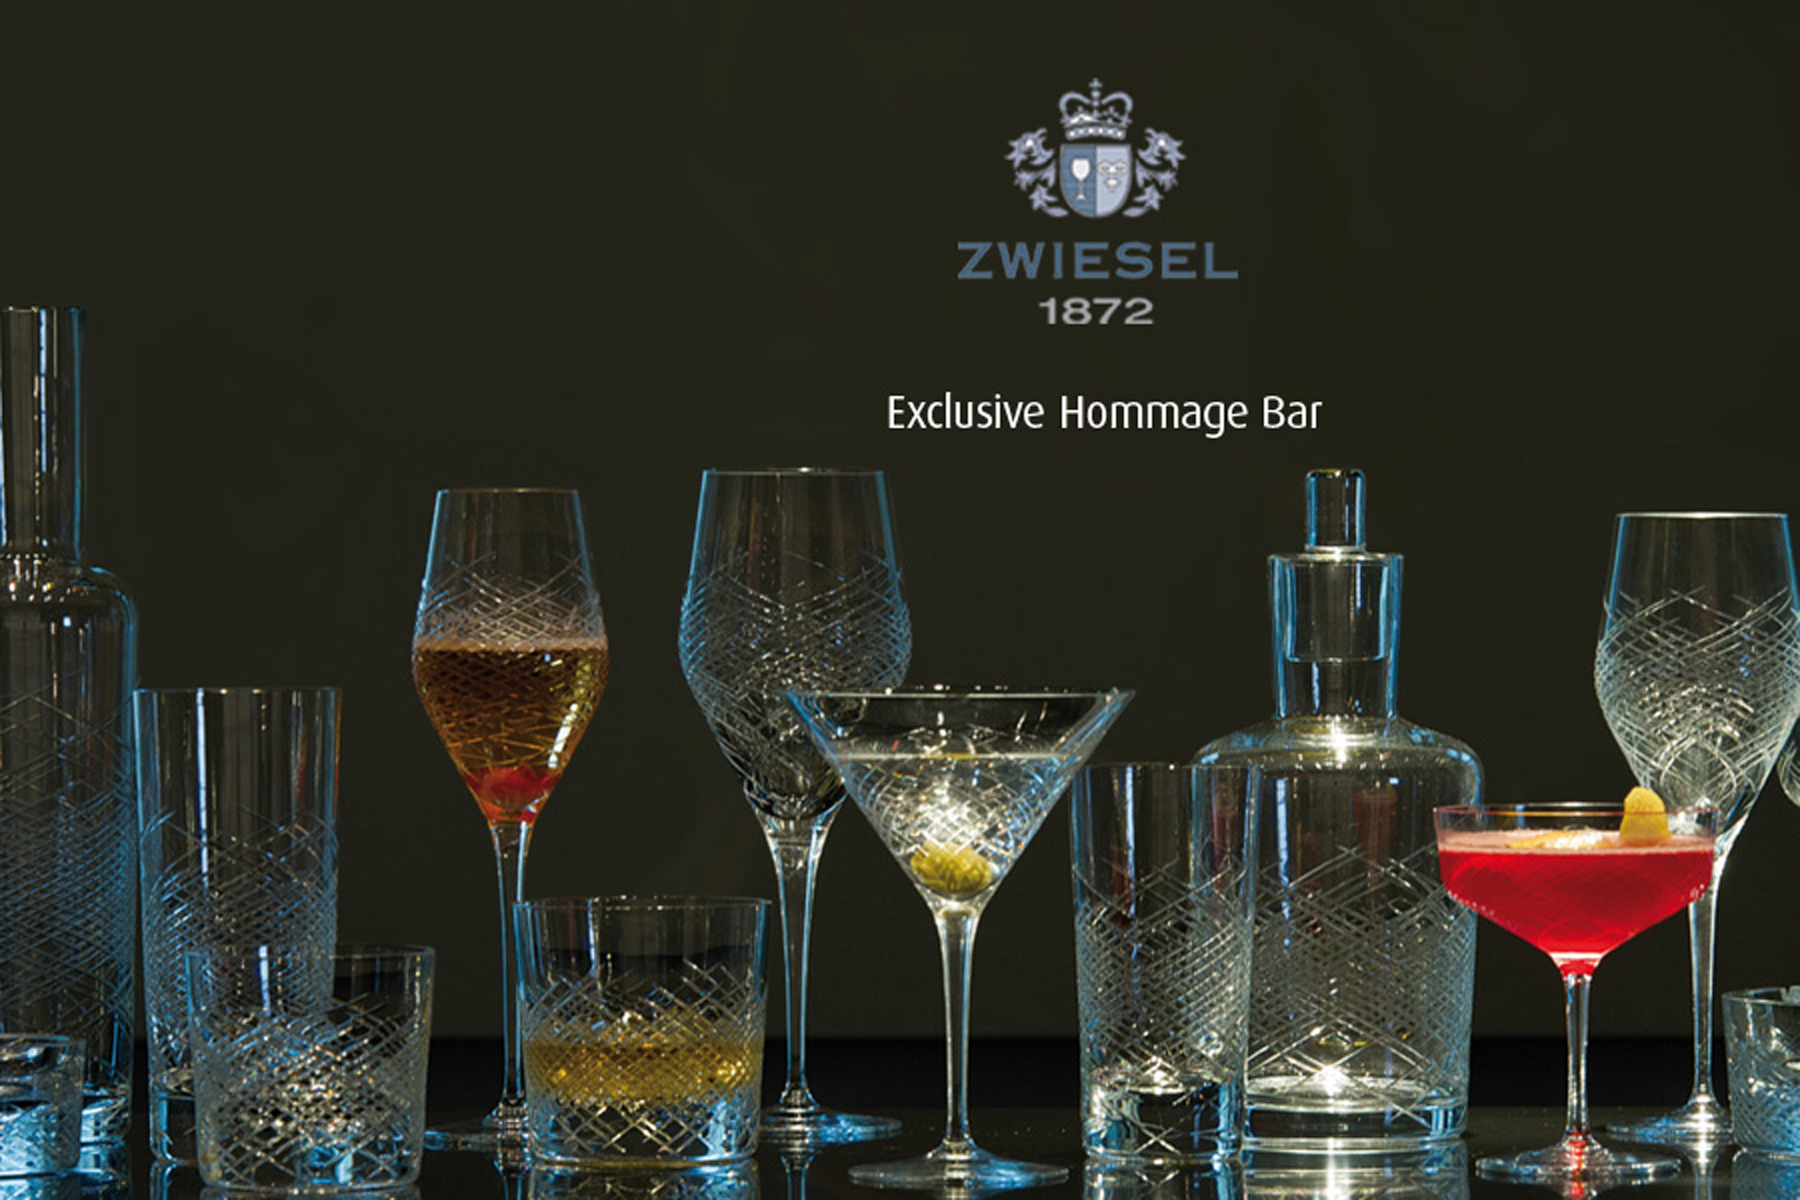 exclusive-hommage-bar by zwiesel, charles schumann collection